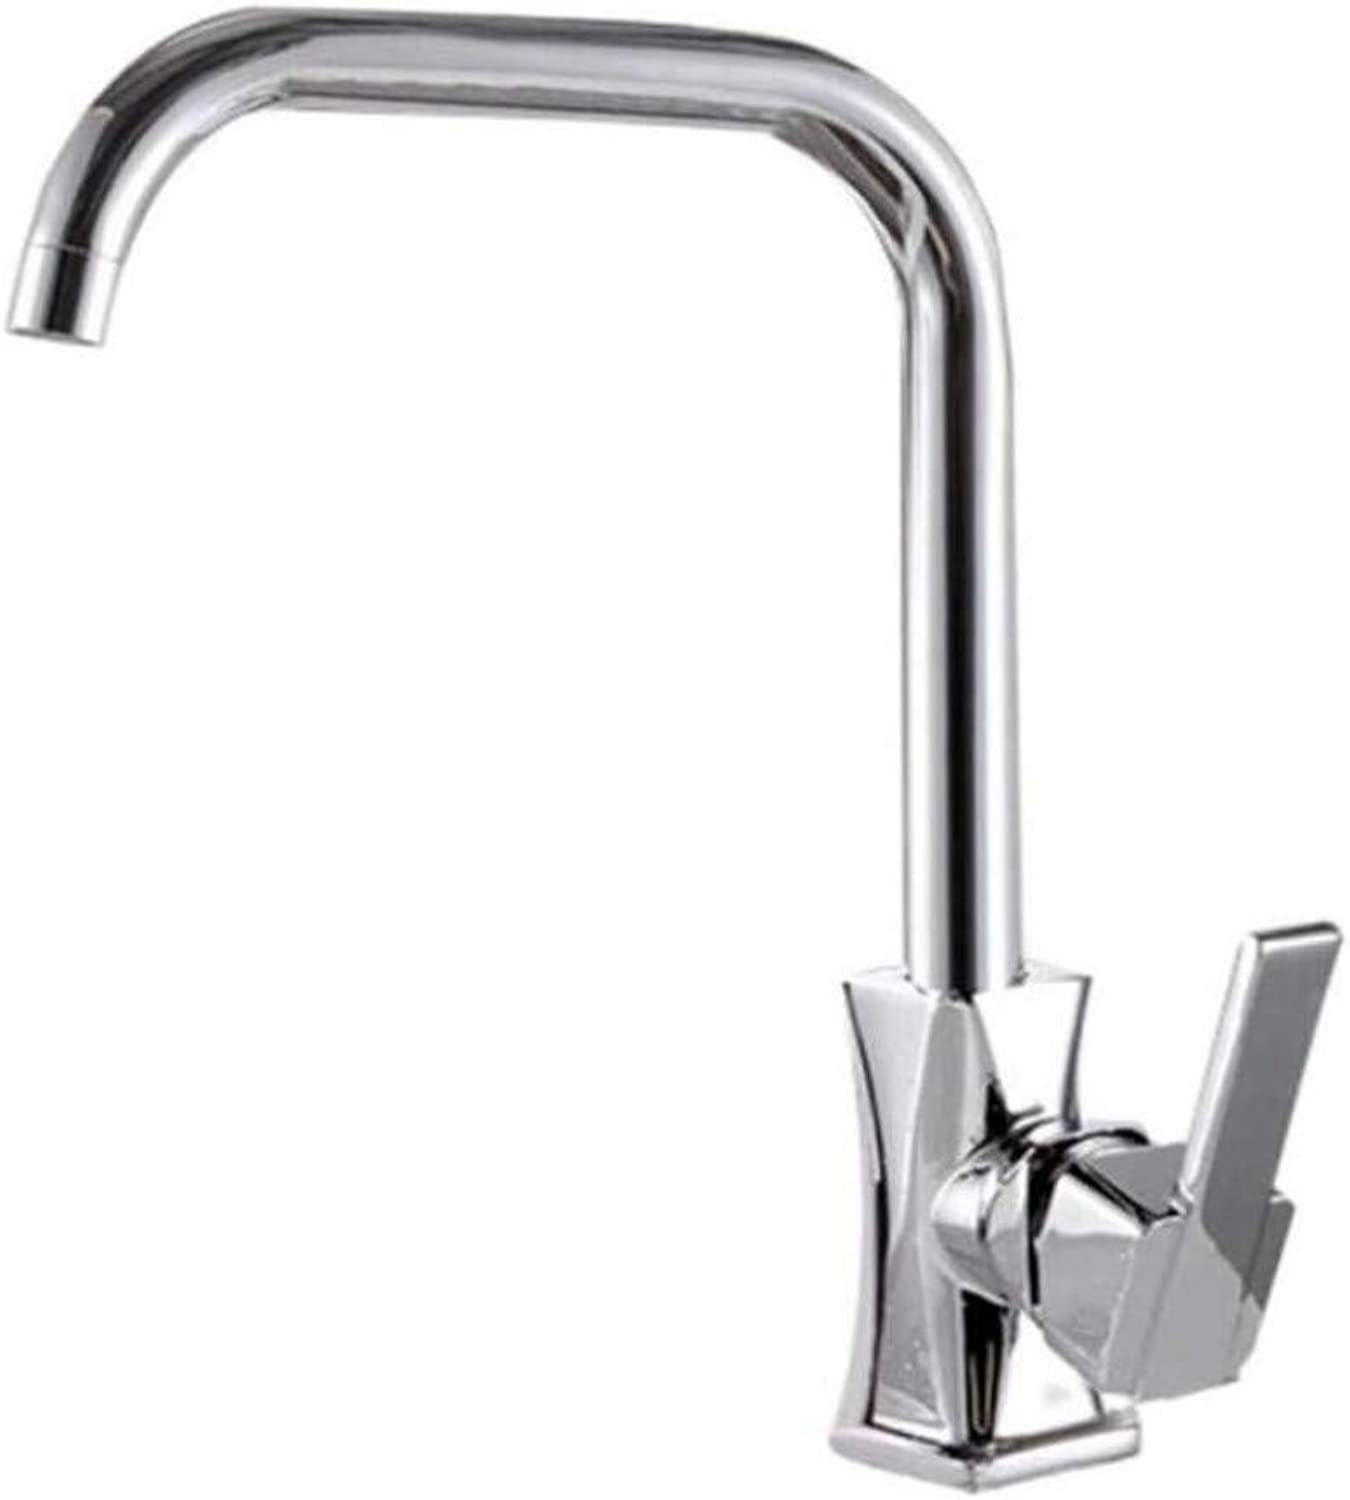 Taps Kitchen Sinktaps Mixer Swivel Faucet Sink Cooking Basin Cold and Hot Faucet Waist Seven Words